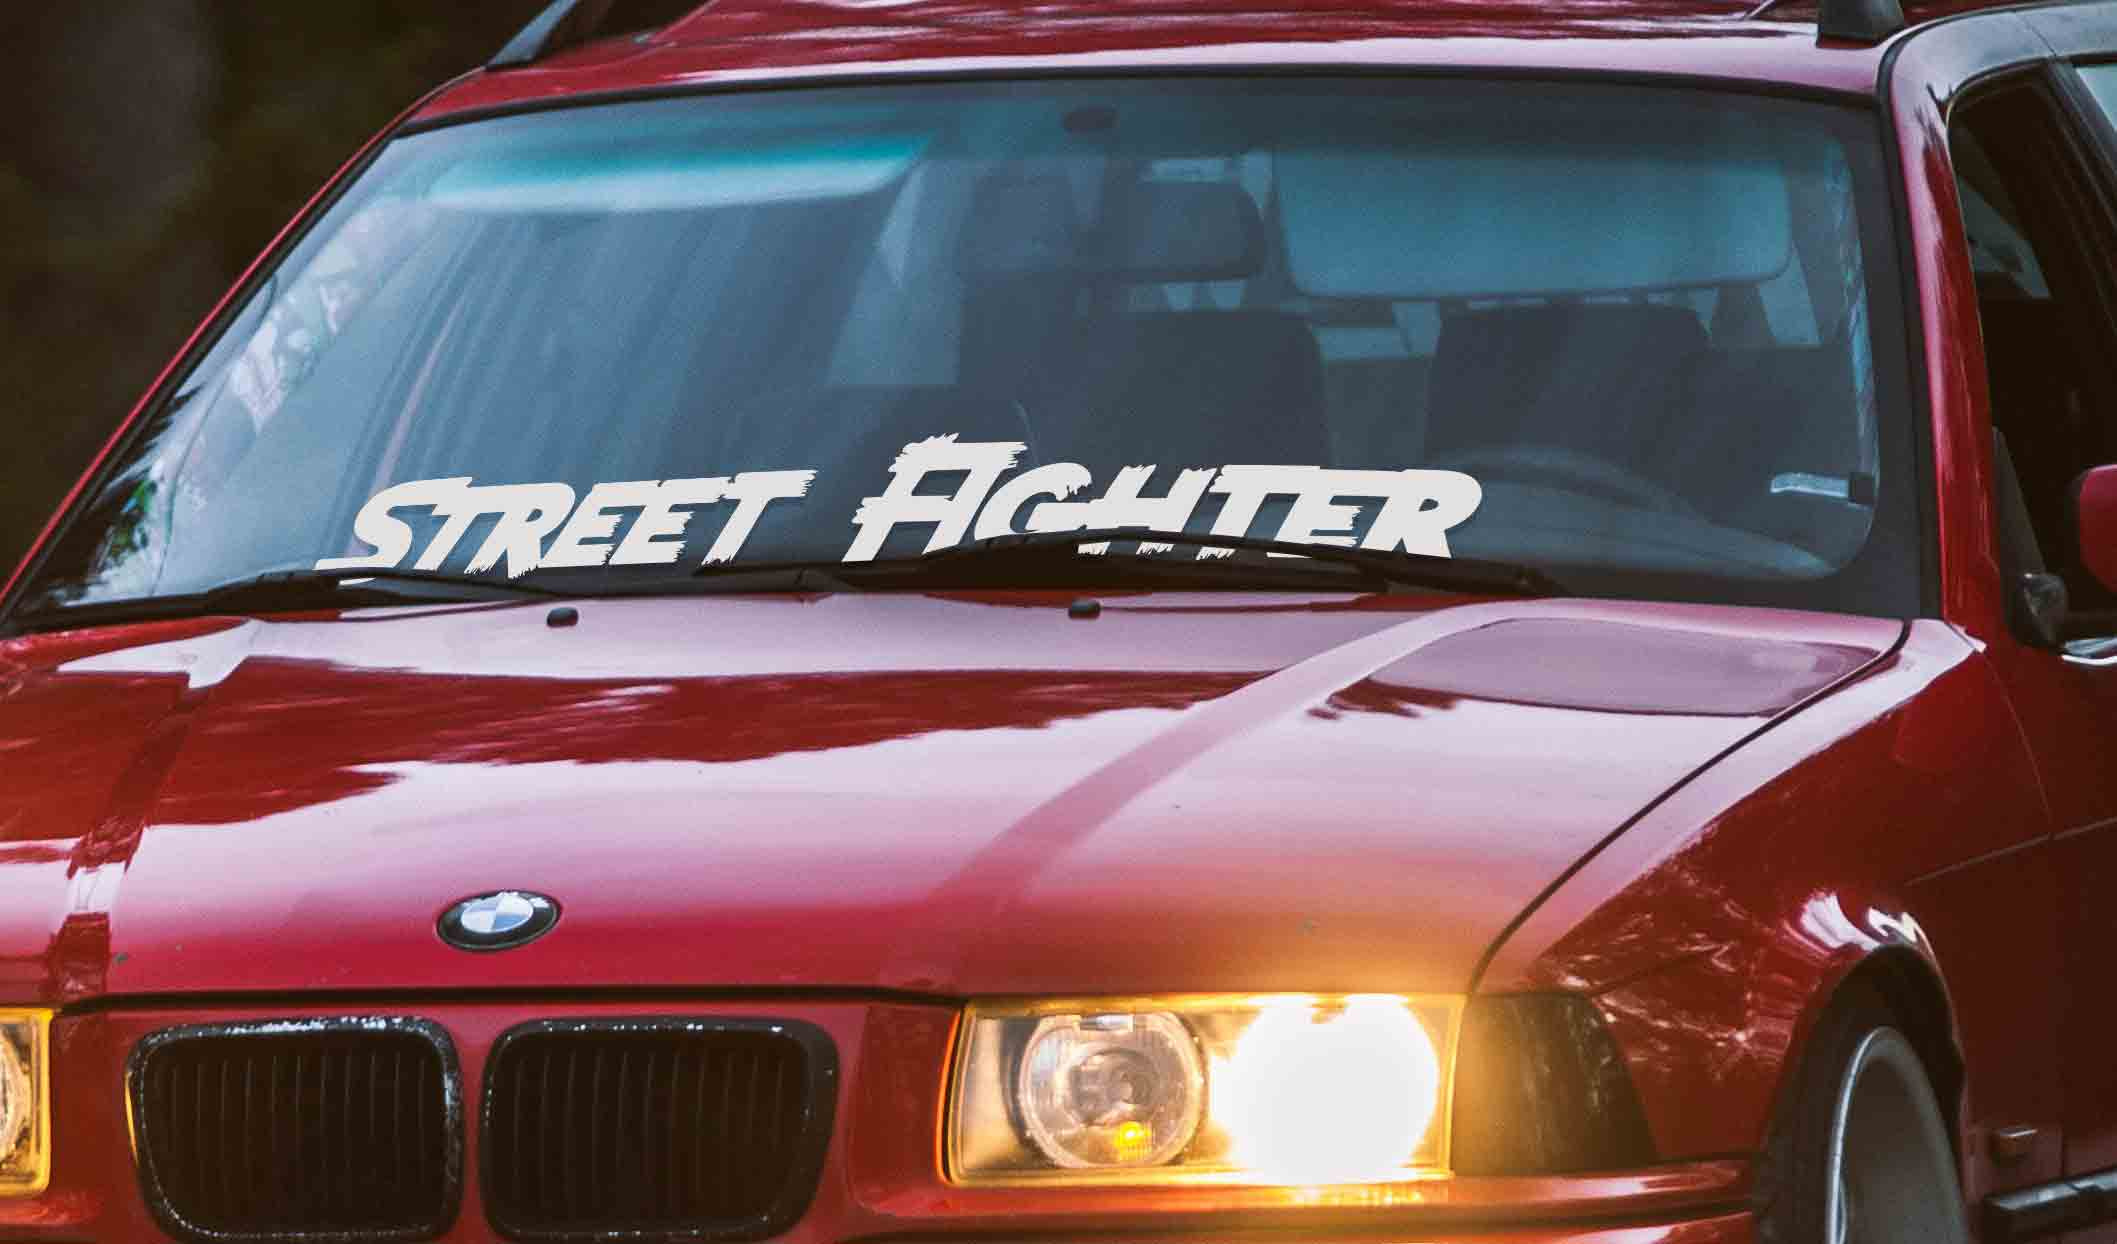 Street Fighter car windshield banner vinyl sticker